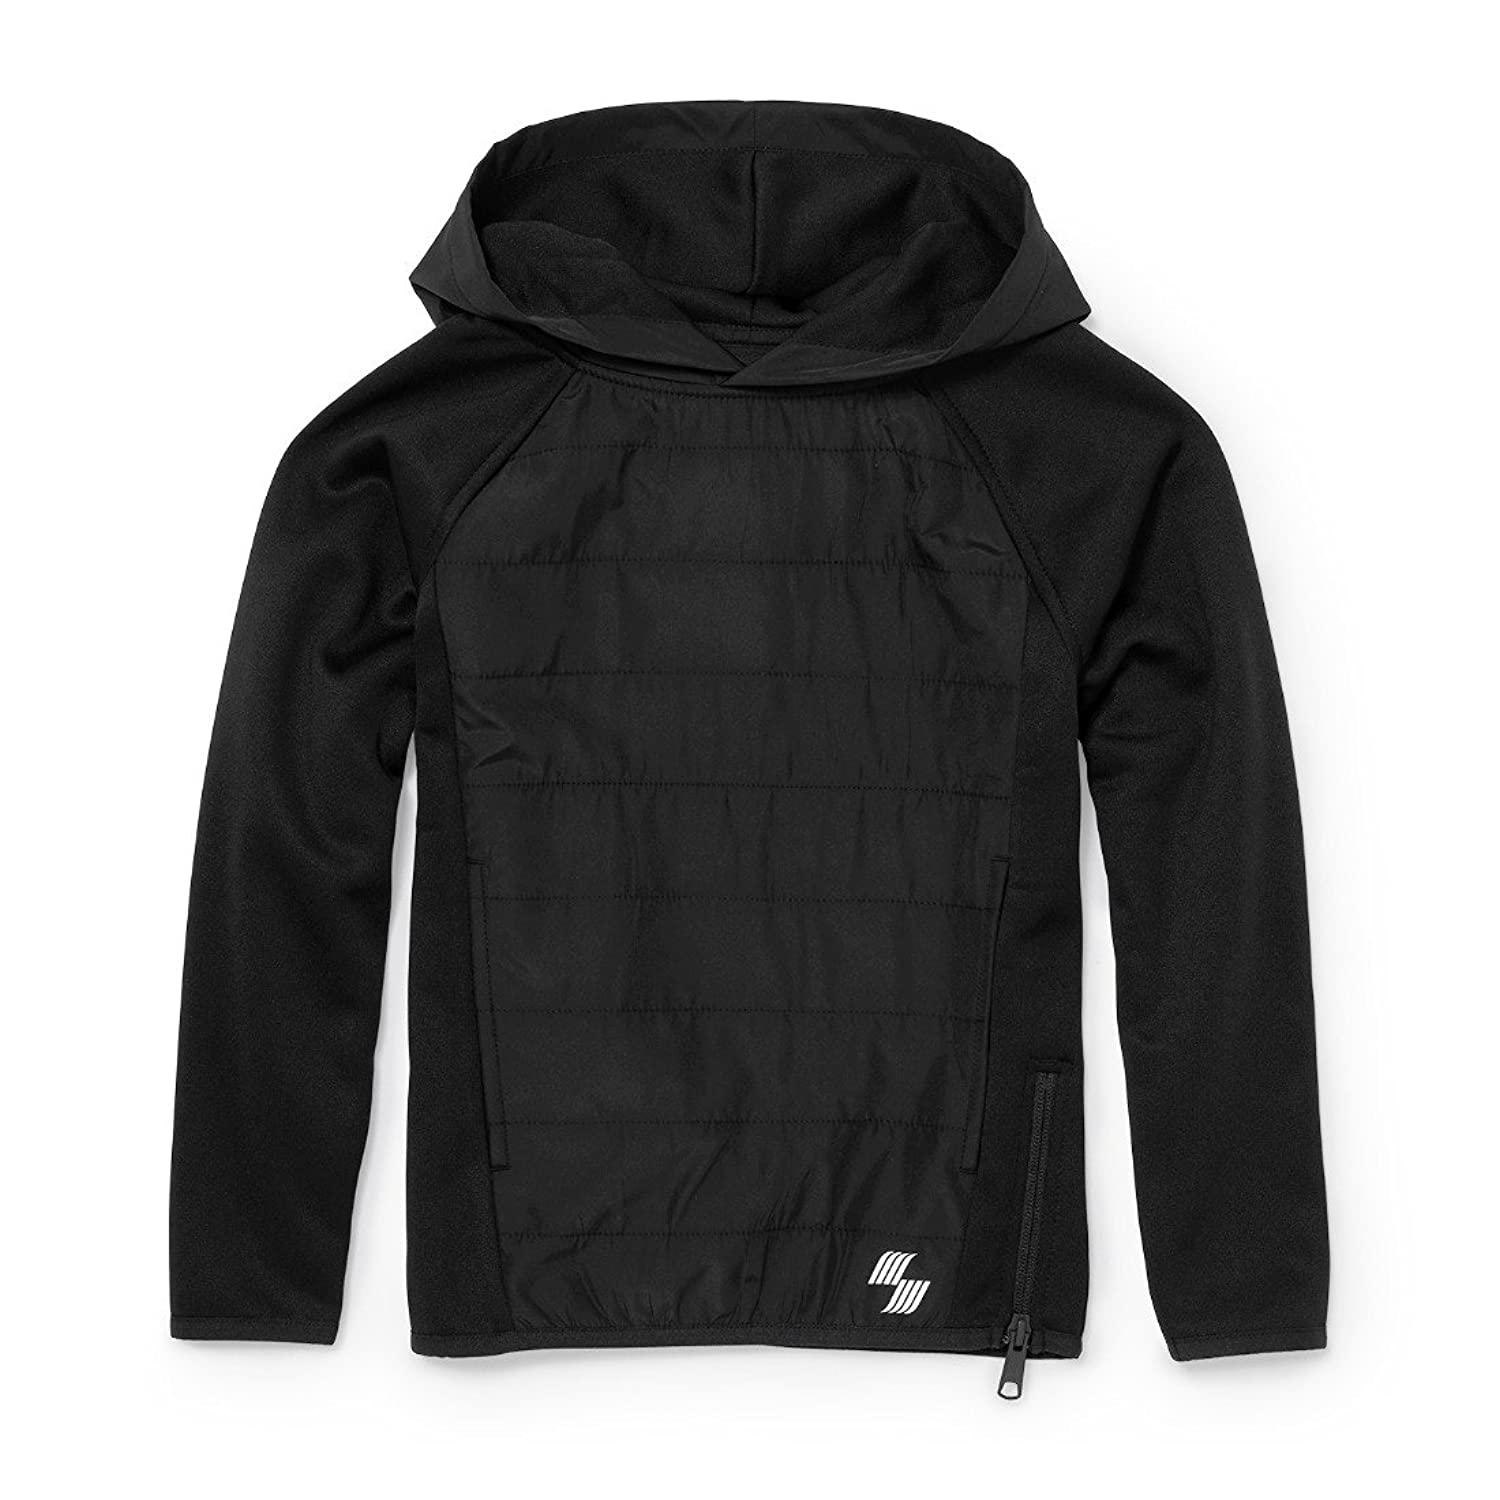 hot The Children's Place Big Boys' Quilted Pull-on Hoodie on sale